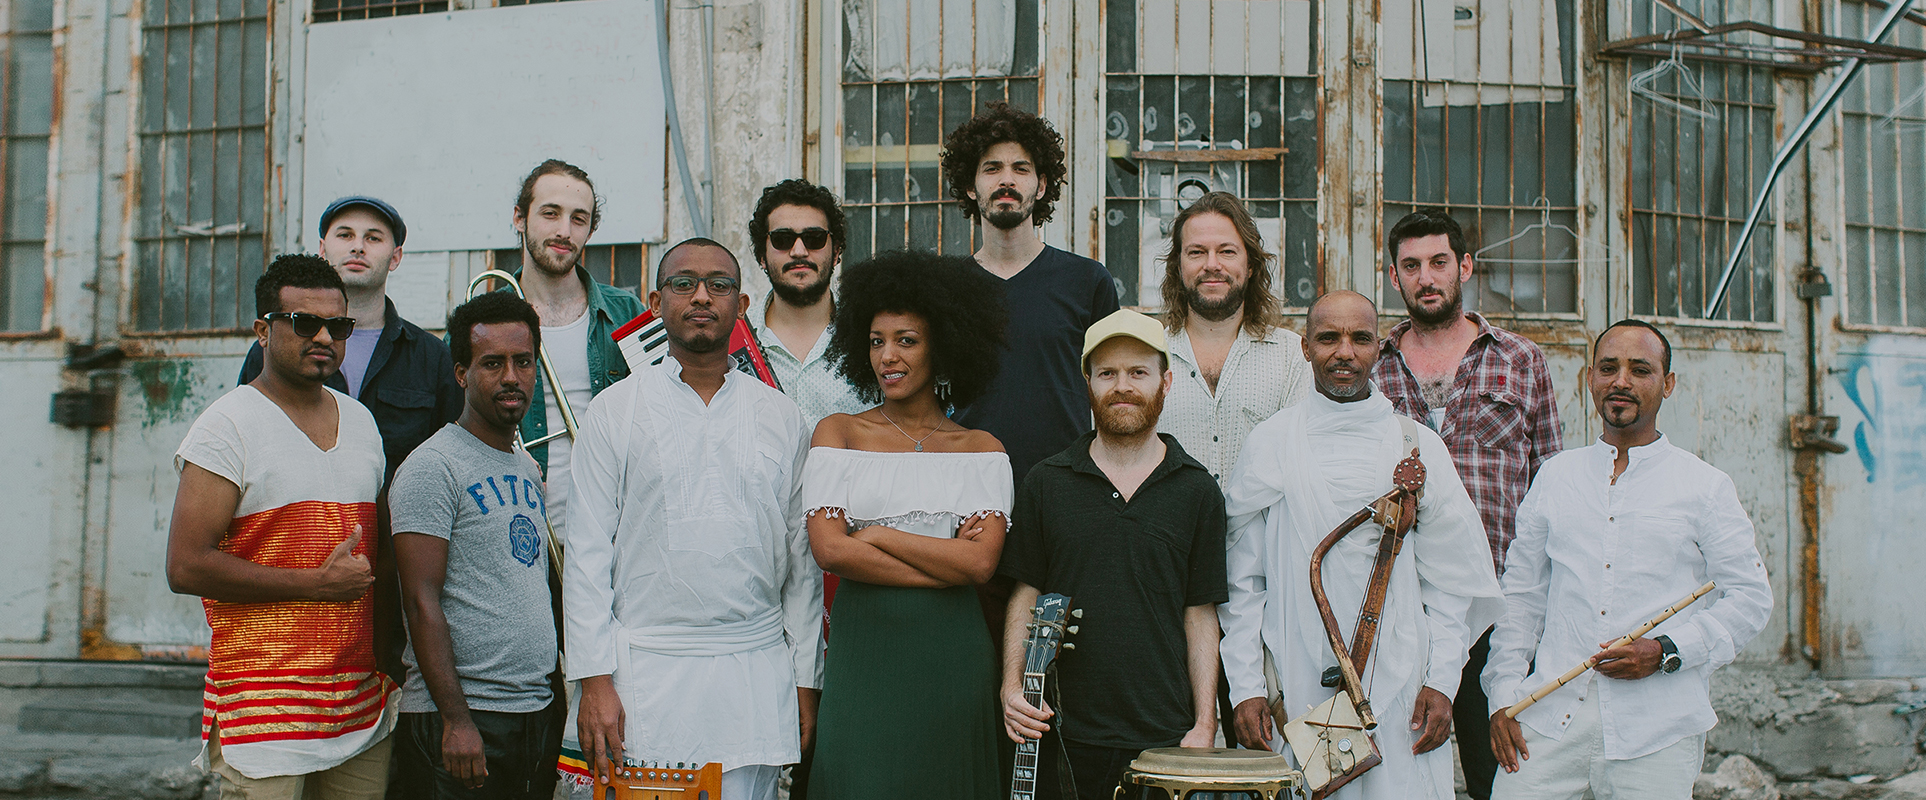 The Ethiobeat Orchestra